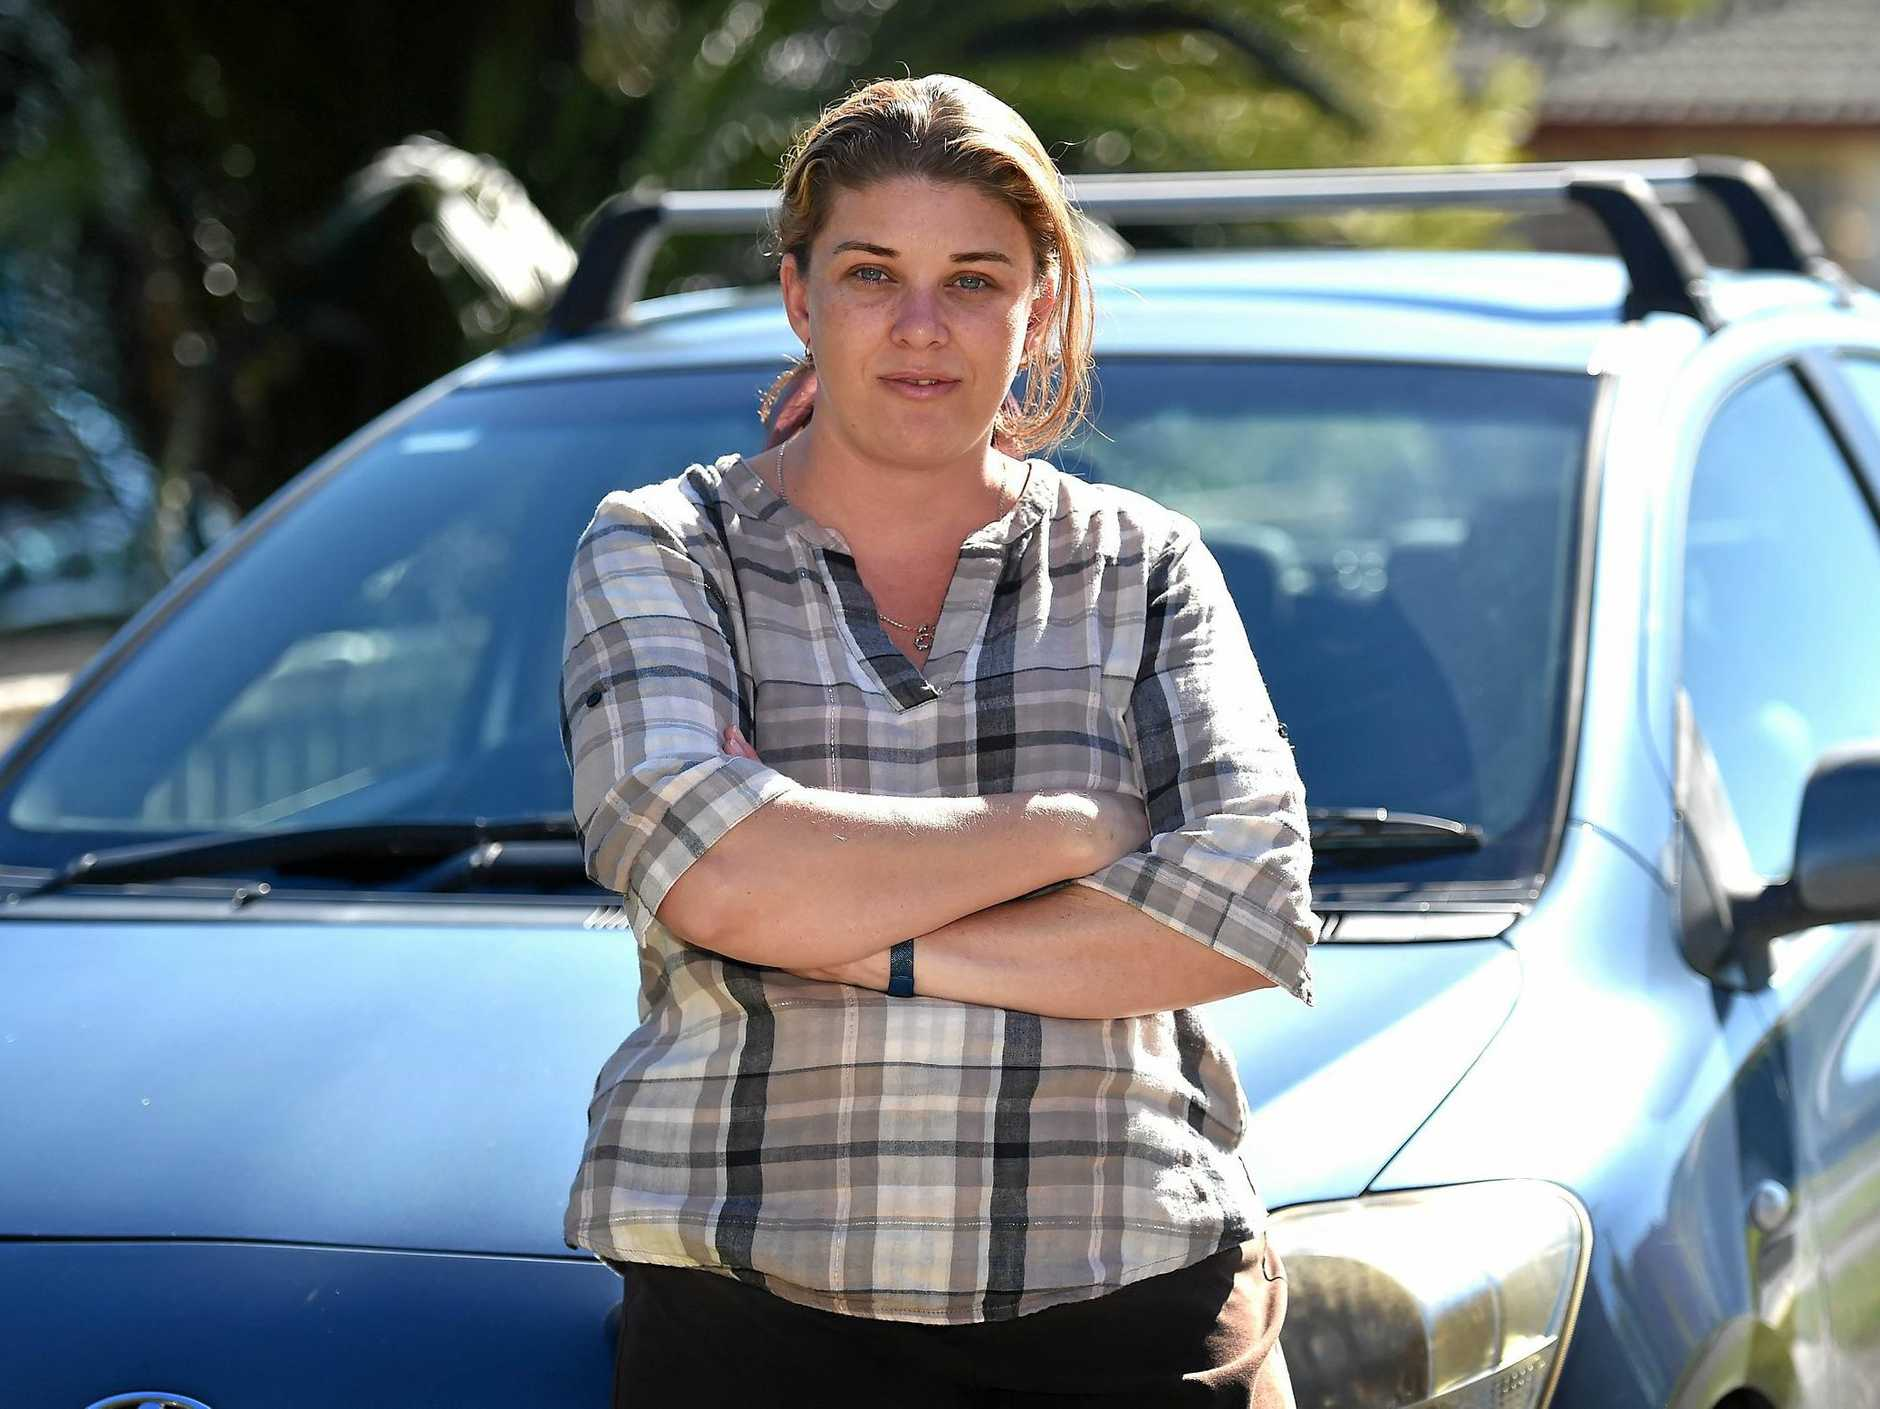 SHAKEN UP: Skye McKenna saw a horrific crash on the Bruce Highway on Sunday night.